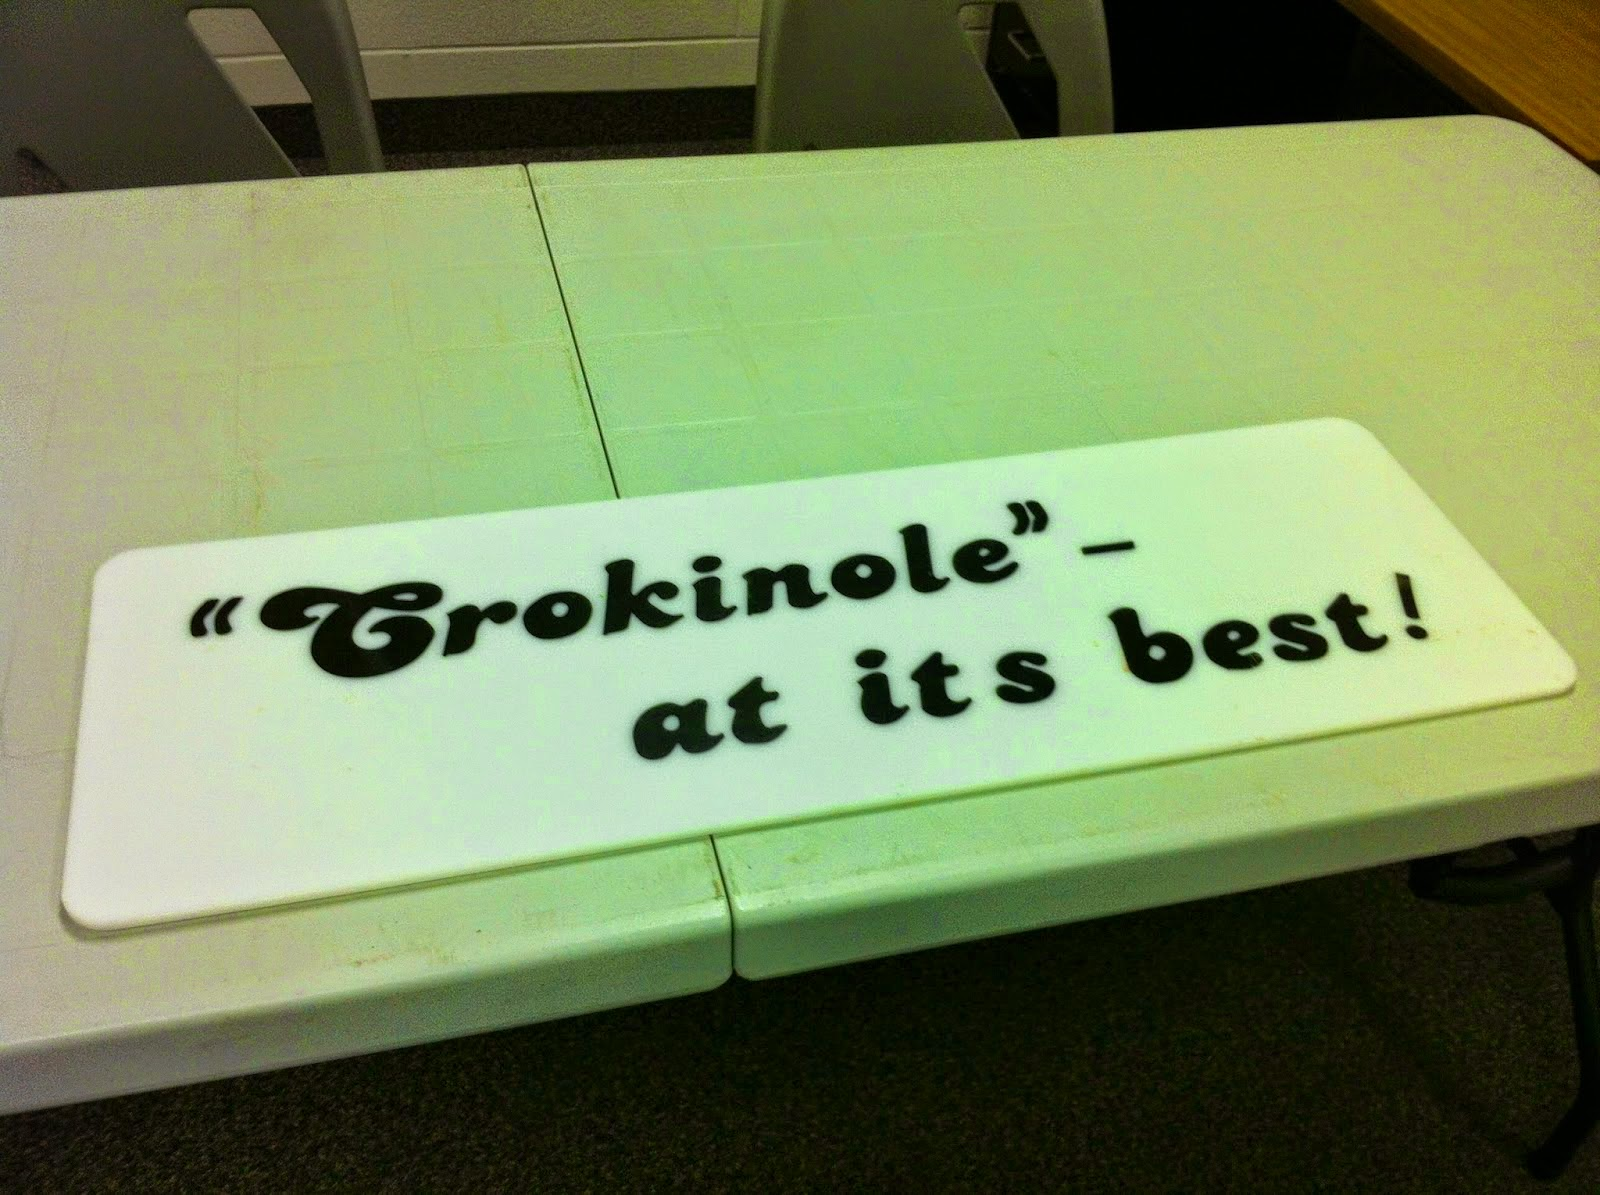 Crokinole at its best! sign from St. Jacobs